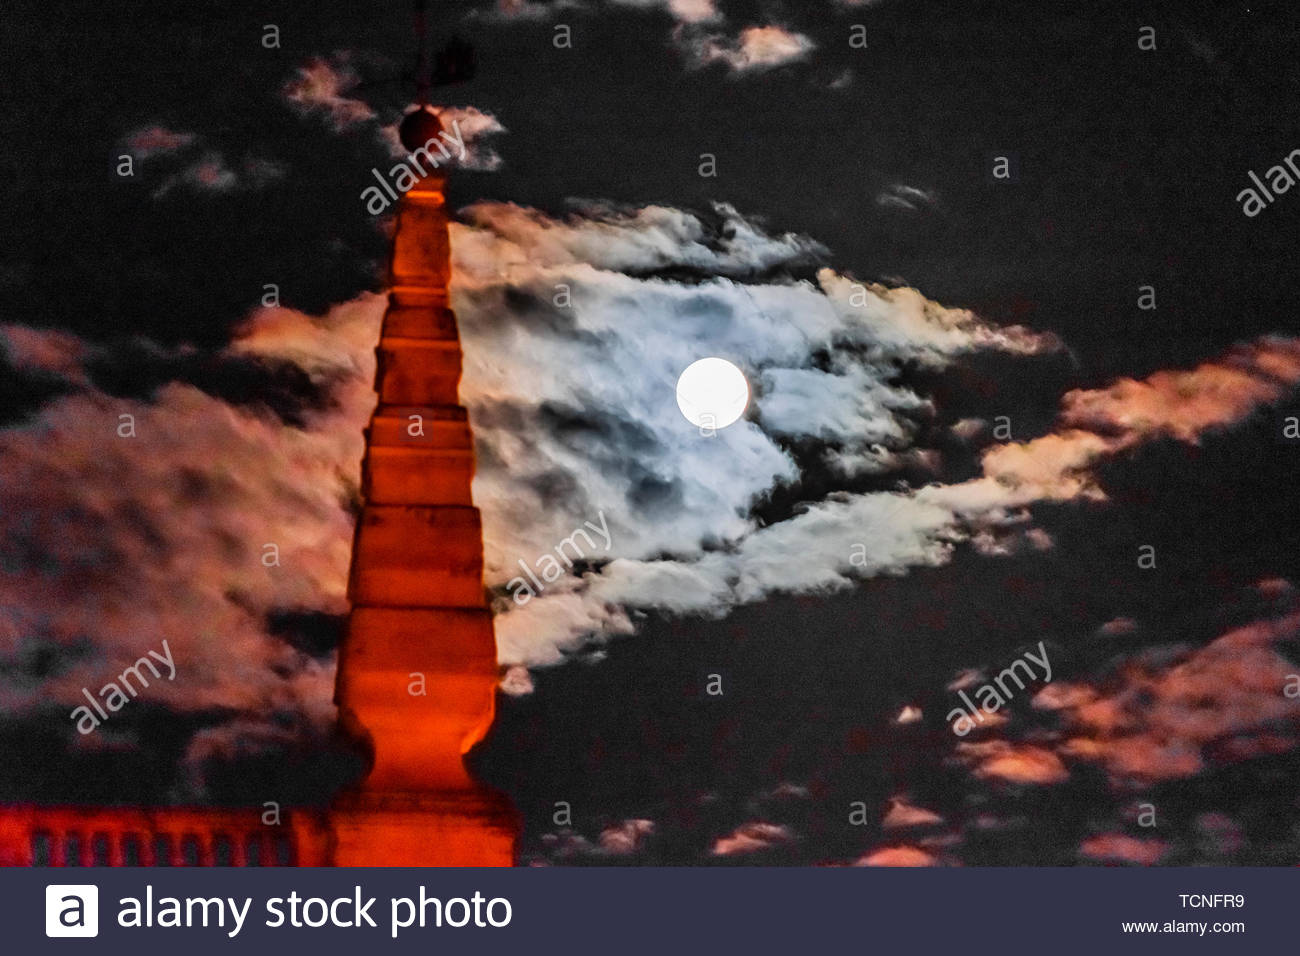 Full moon on Good Friday of Holy Week (Semana Santa), Seville, Andalusia, Spain. - Stock Image